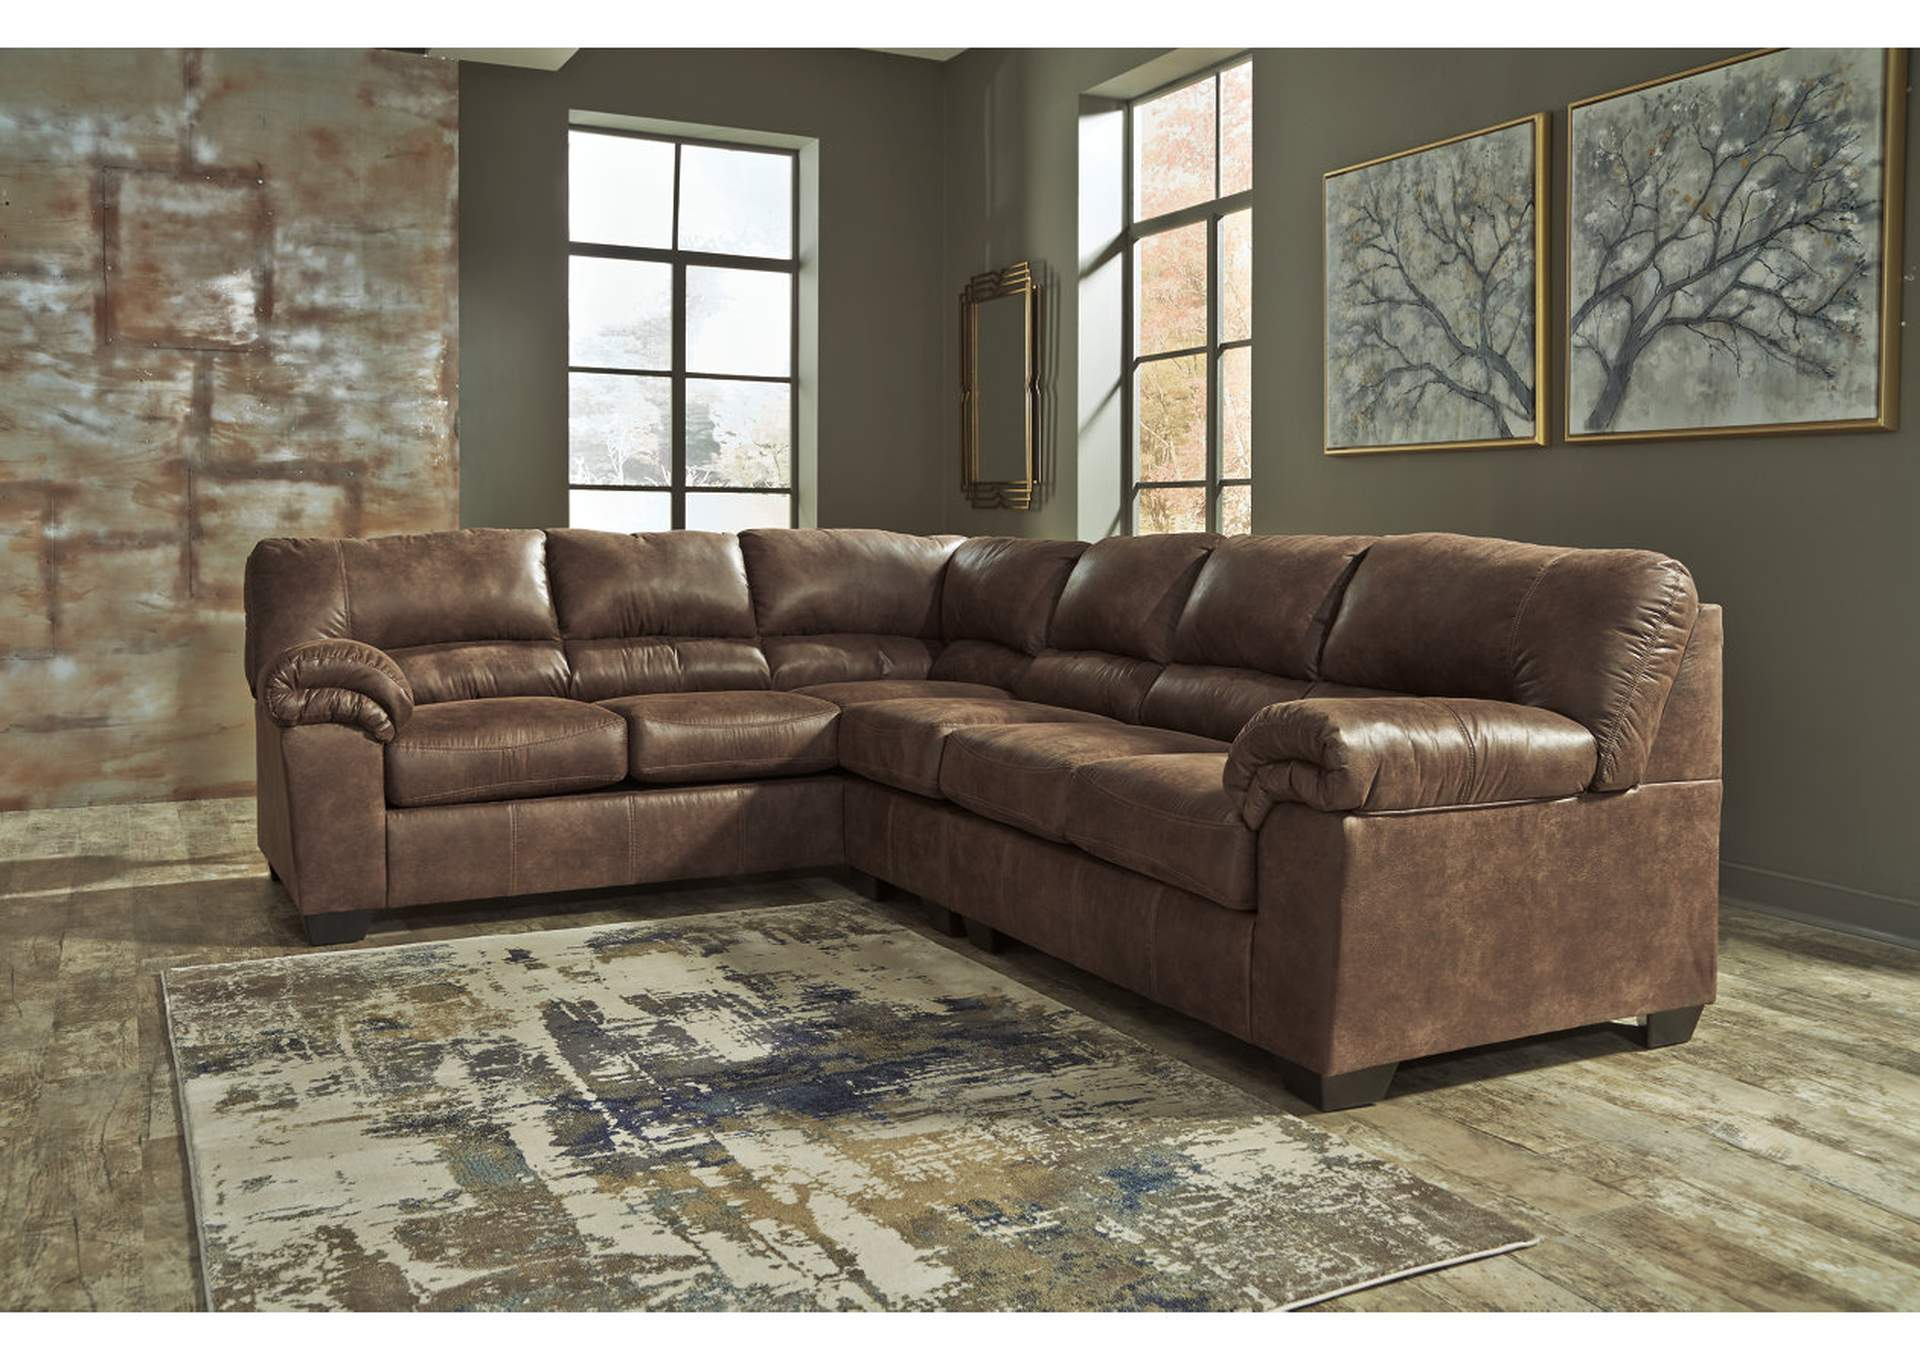 Bladen Coffee Right Facing Extended Sectional,ABF Signature Design by Ashley